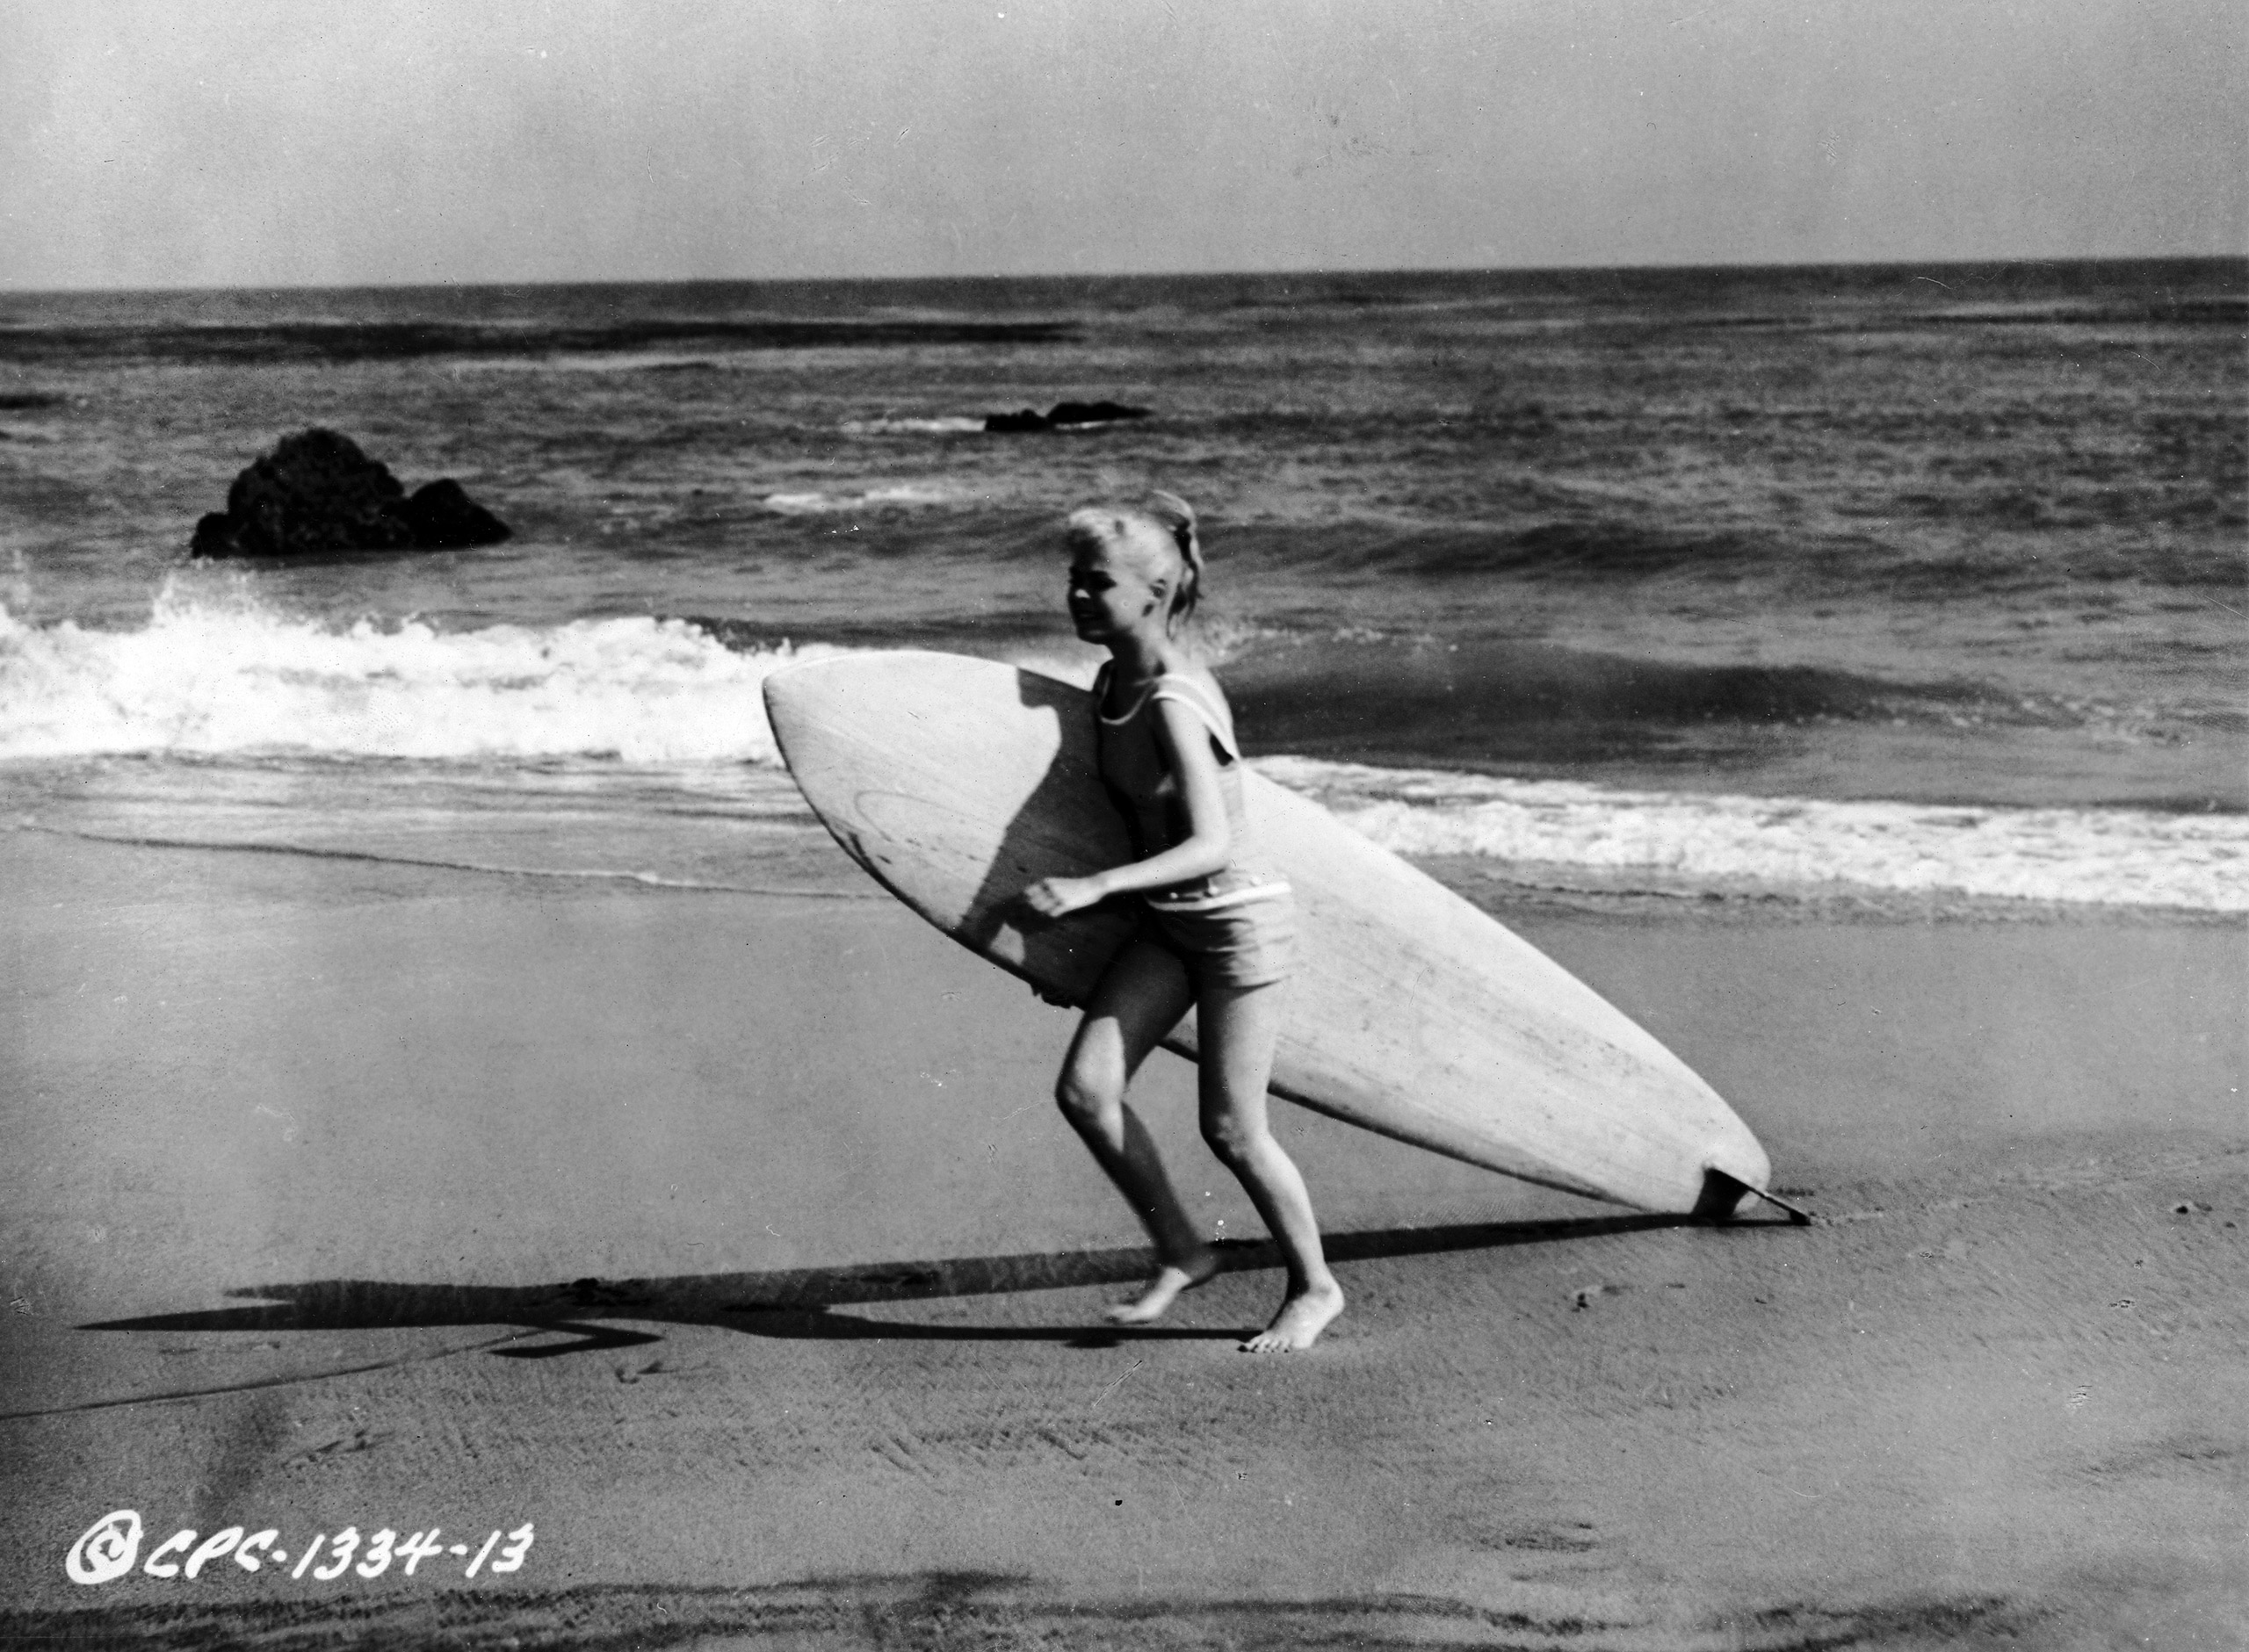 American actor Sandra Dee walks on the beach, carrying a surfboard in a still from the film, 'Gidget,' directed by Paul Wendkos, 1959.